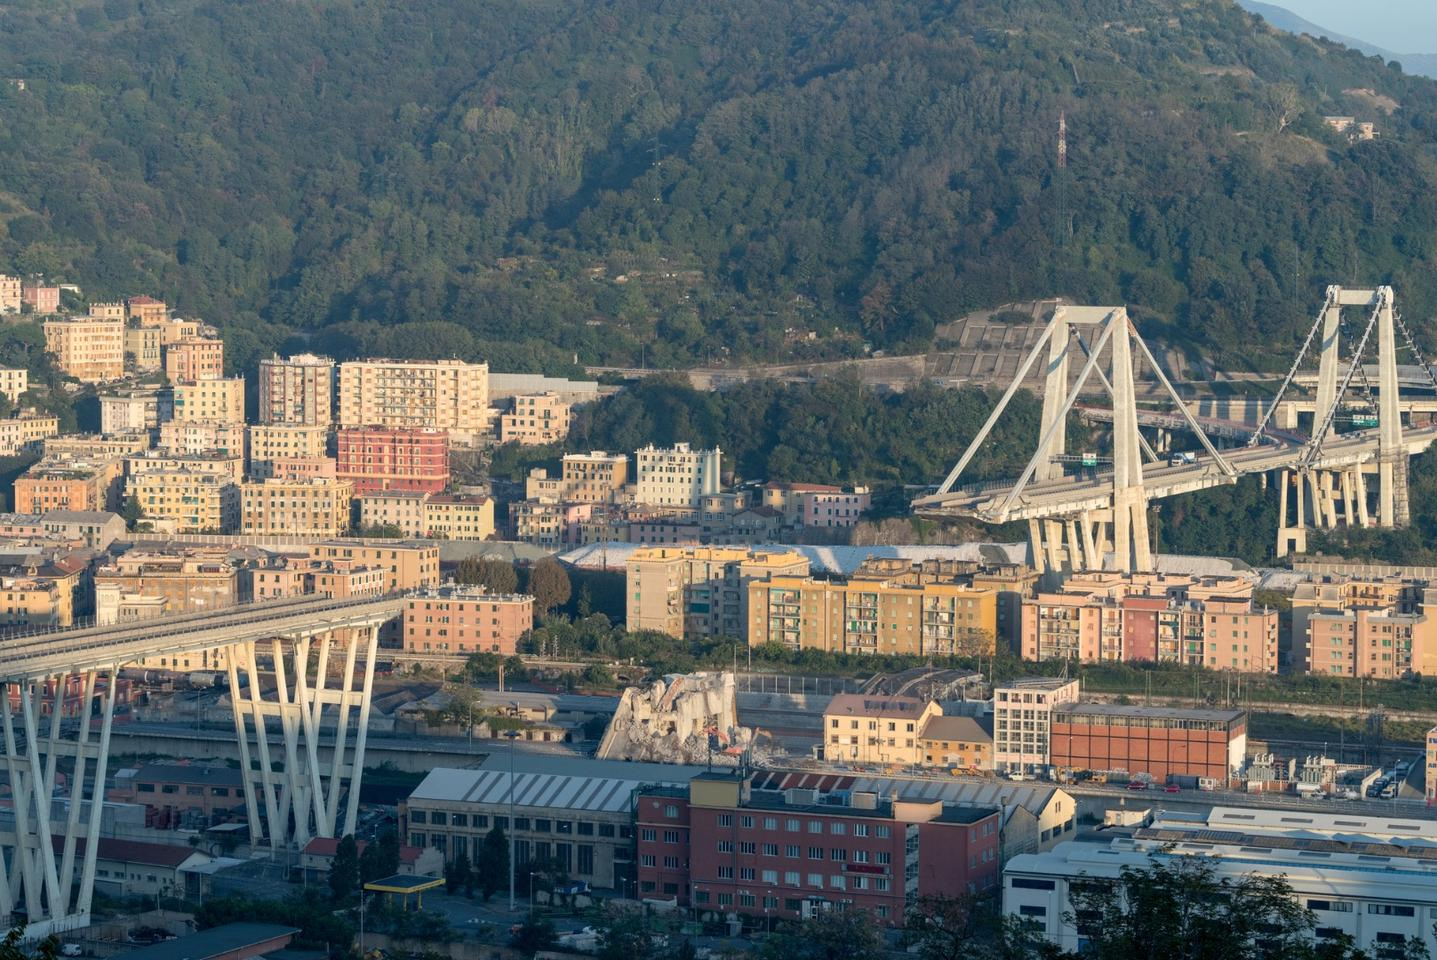 Satellite radar imaging was able to detect signs of warping that preceded the collapse of the Morandi Bridge on August 14, 2018